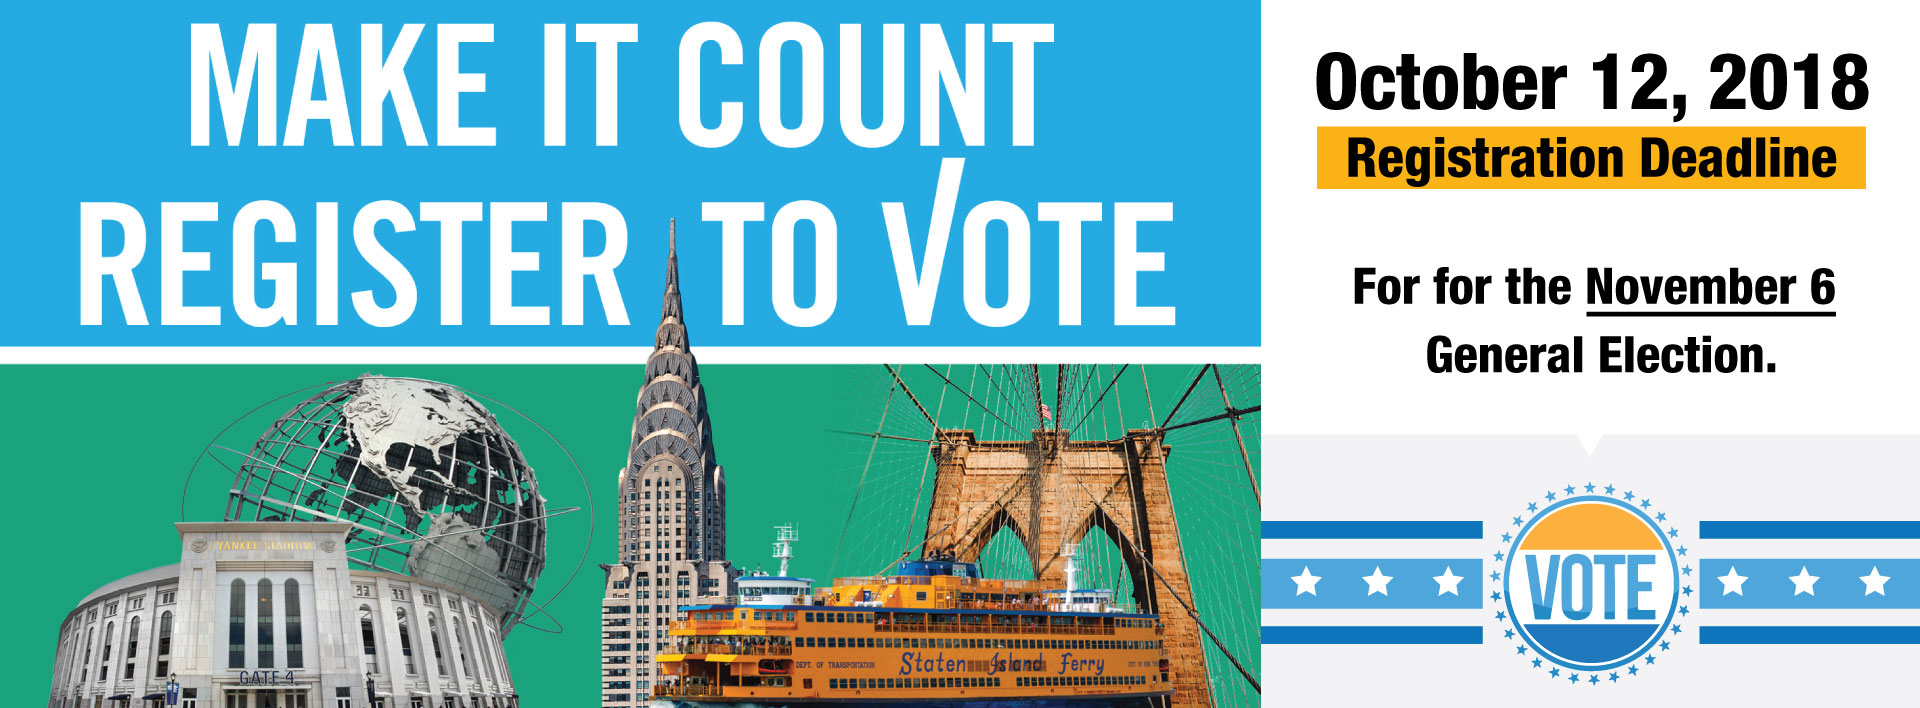 Make It Count, Register to Vote in the General Election by October 12, 2018